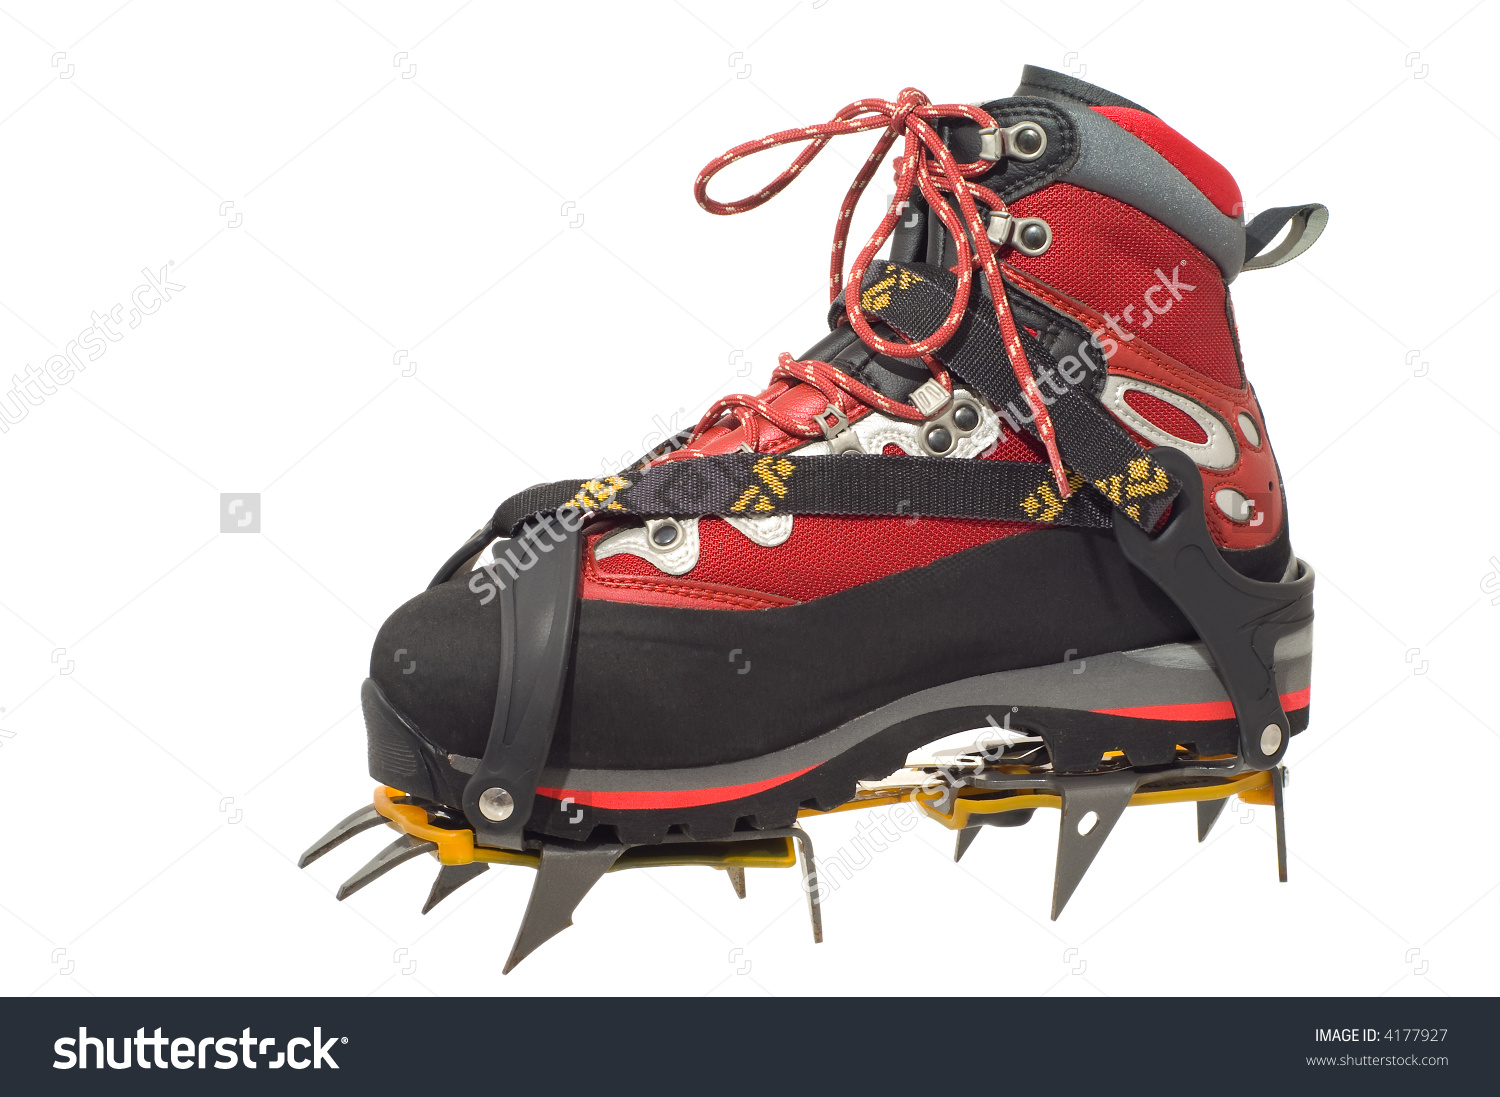 Trekking Boot With Crampon Stock Photo 4177927 : Shutterstock.